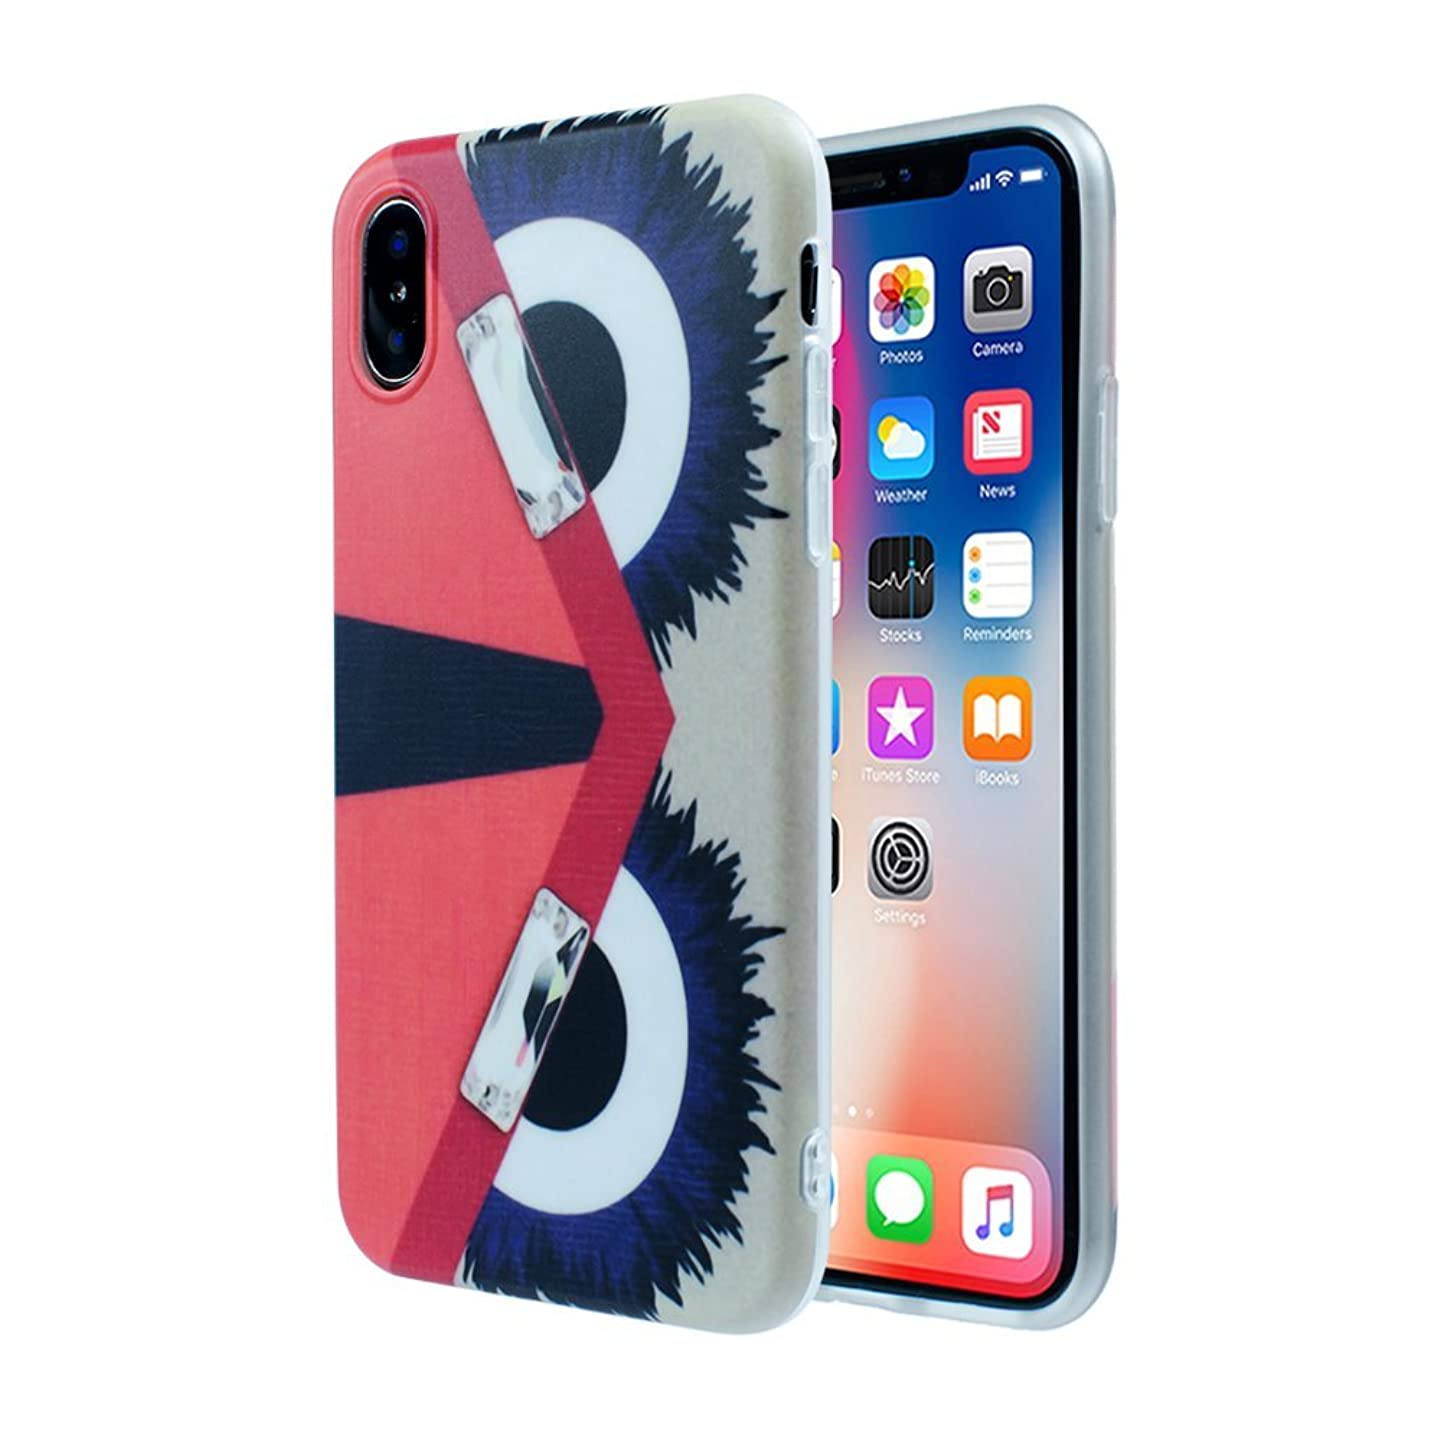 iPhone X /10 Designer Face Eyes Case: Luxury Durable Designer Womens Protective TPU Cover/Bumper/Skin/Cushion - Latest Fashion Trend (fits 5.8